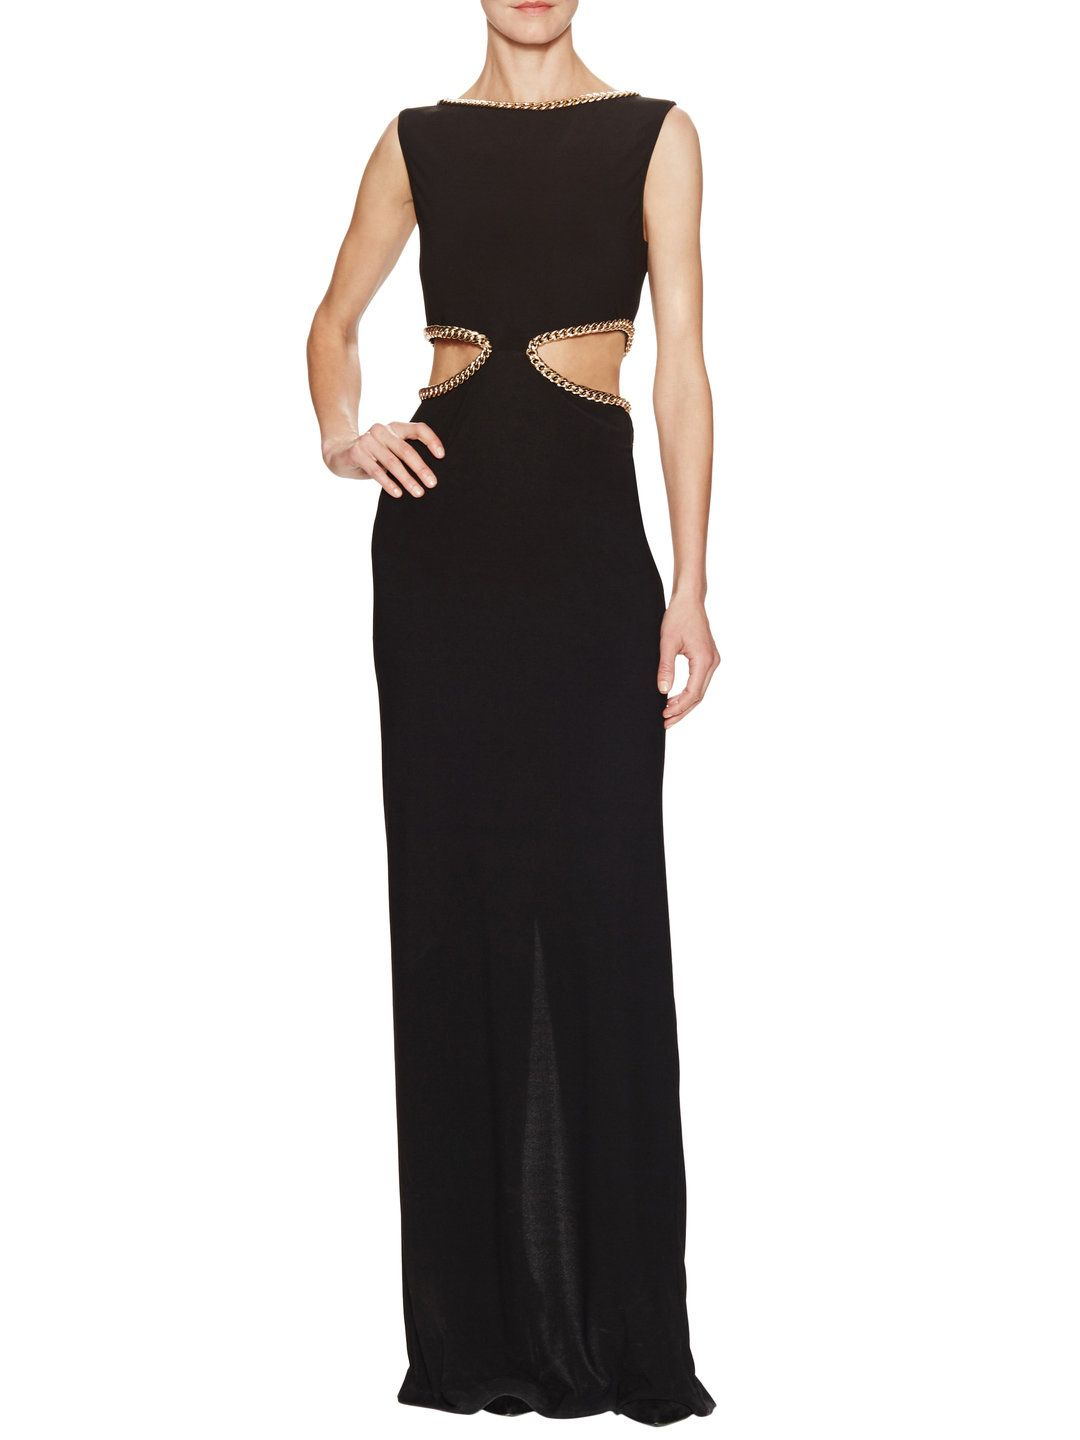 Jacey Midriff Cut-Out Dress by Rachel Zoe at Gilt